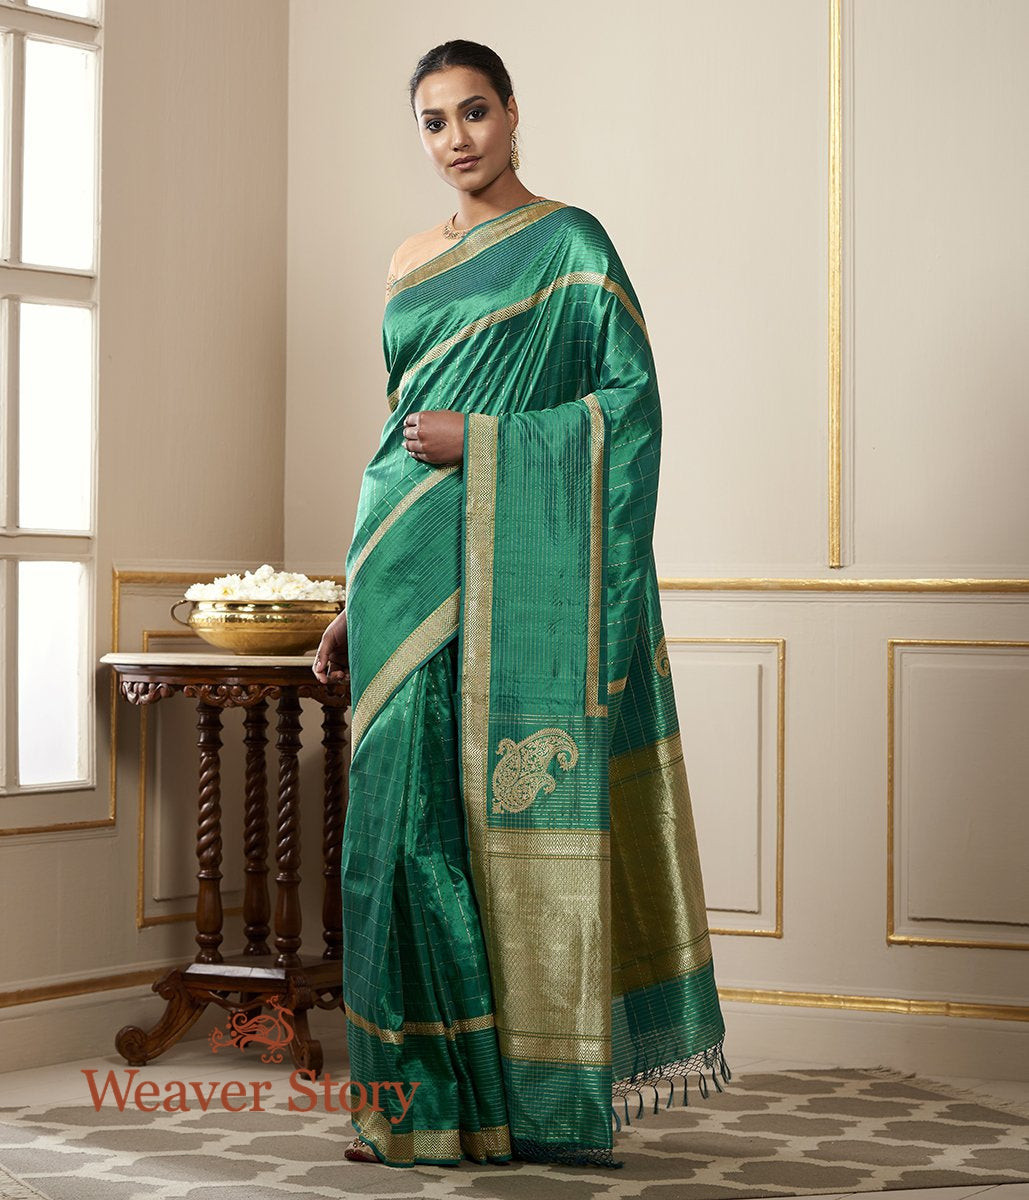 Handwoven Emerald Green Zari Checks Saree with Konia